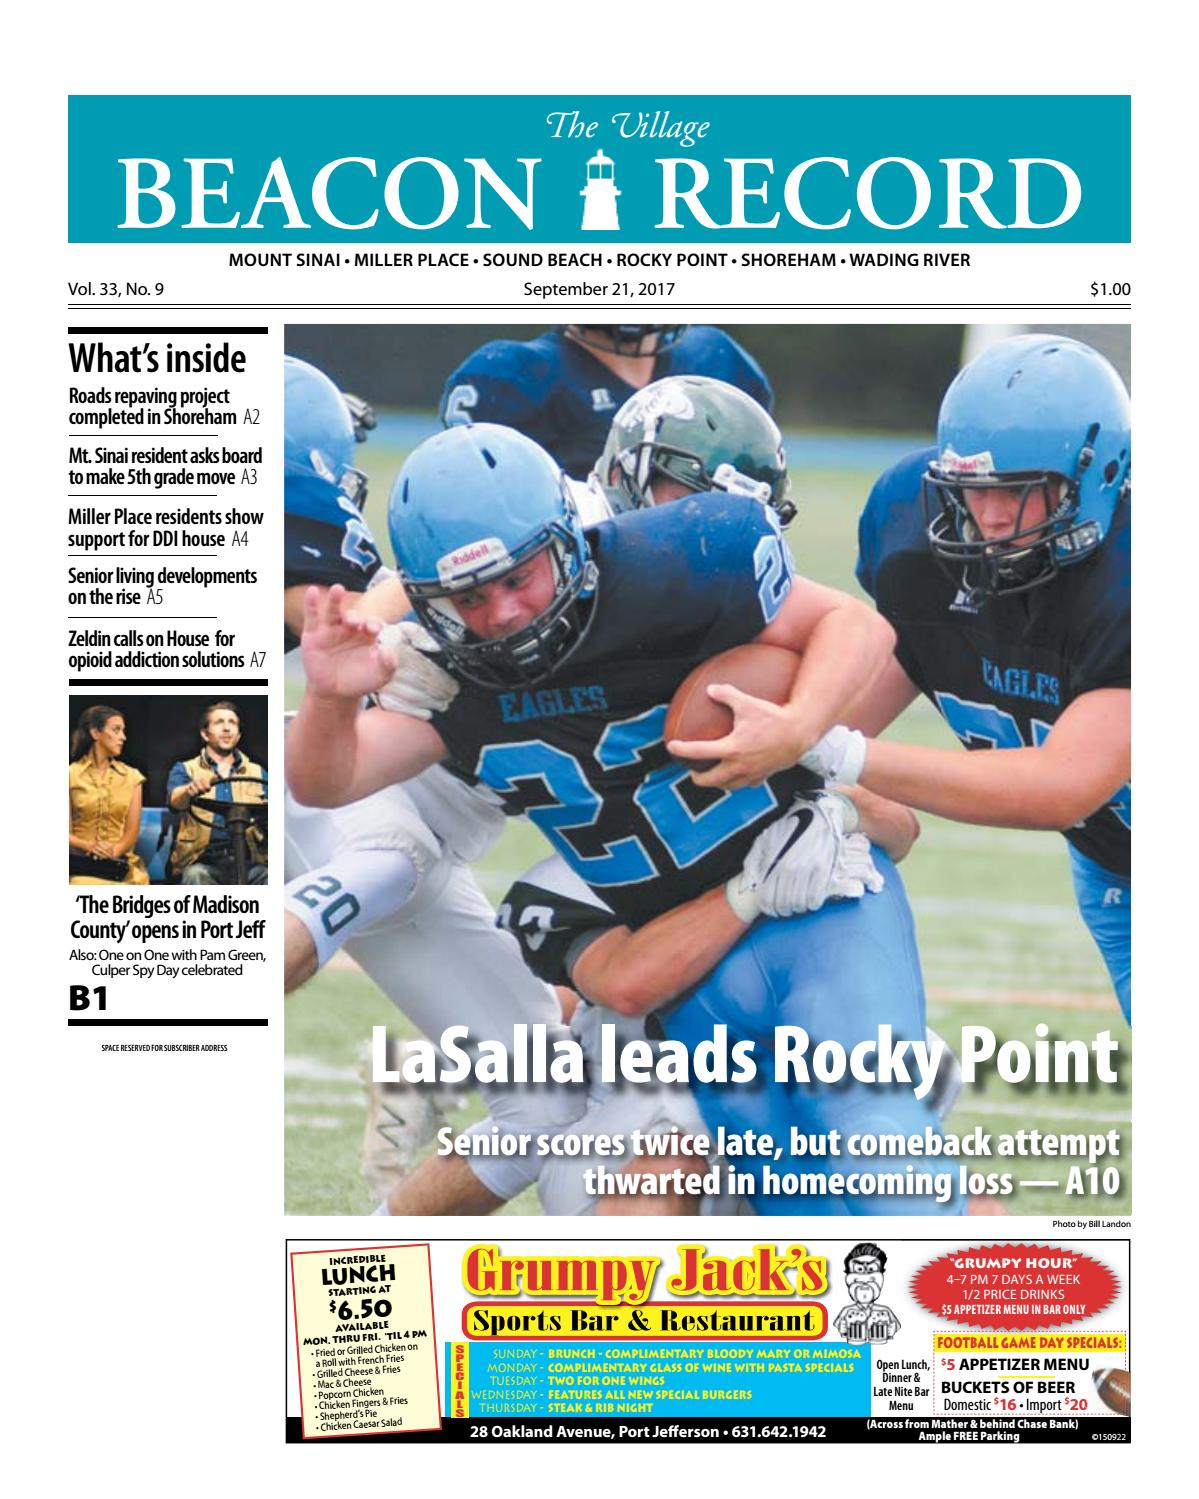 The Village Beacon Record - September 21, 2017 by TBR News Media - issuu